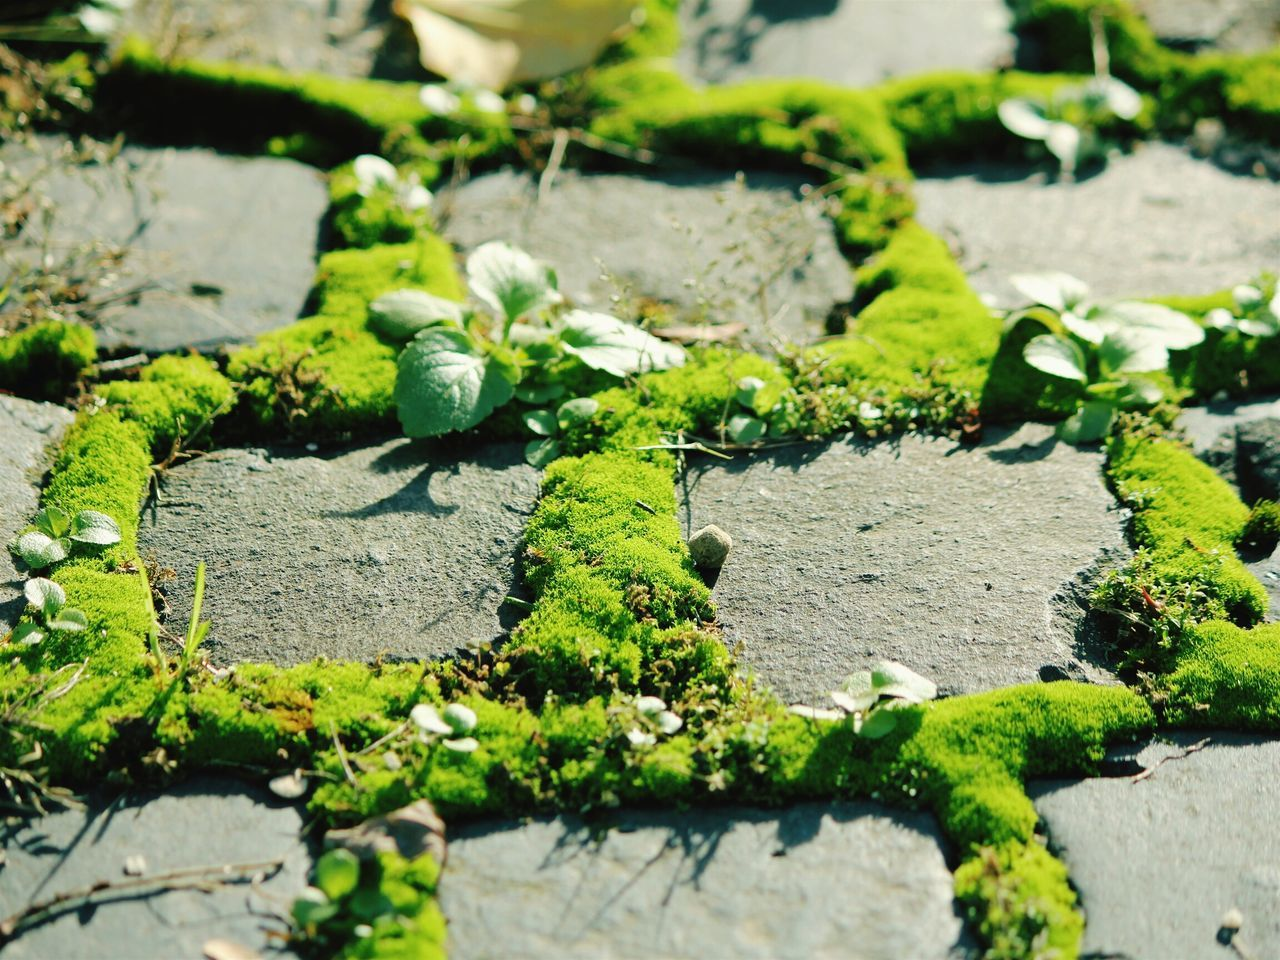 Cobblestone Cobblestones Cobbles Cobblestone Streets Cobblestone Bridge Moss Green Moss Nature Mossy Moss-covered Moss Art Mossy Garden Mossy Rock New Years Resolutions 2016